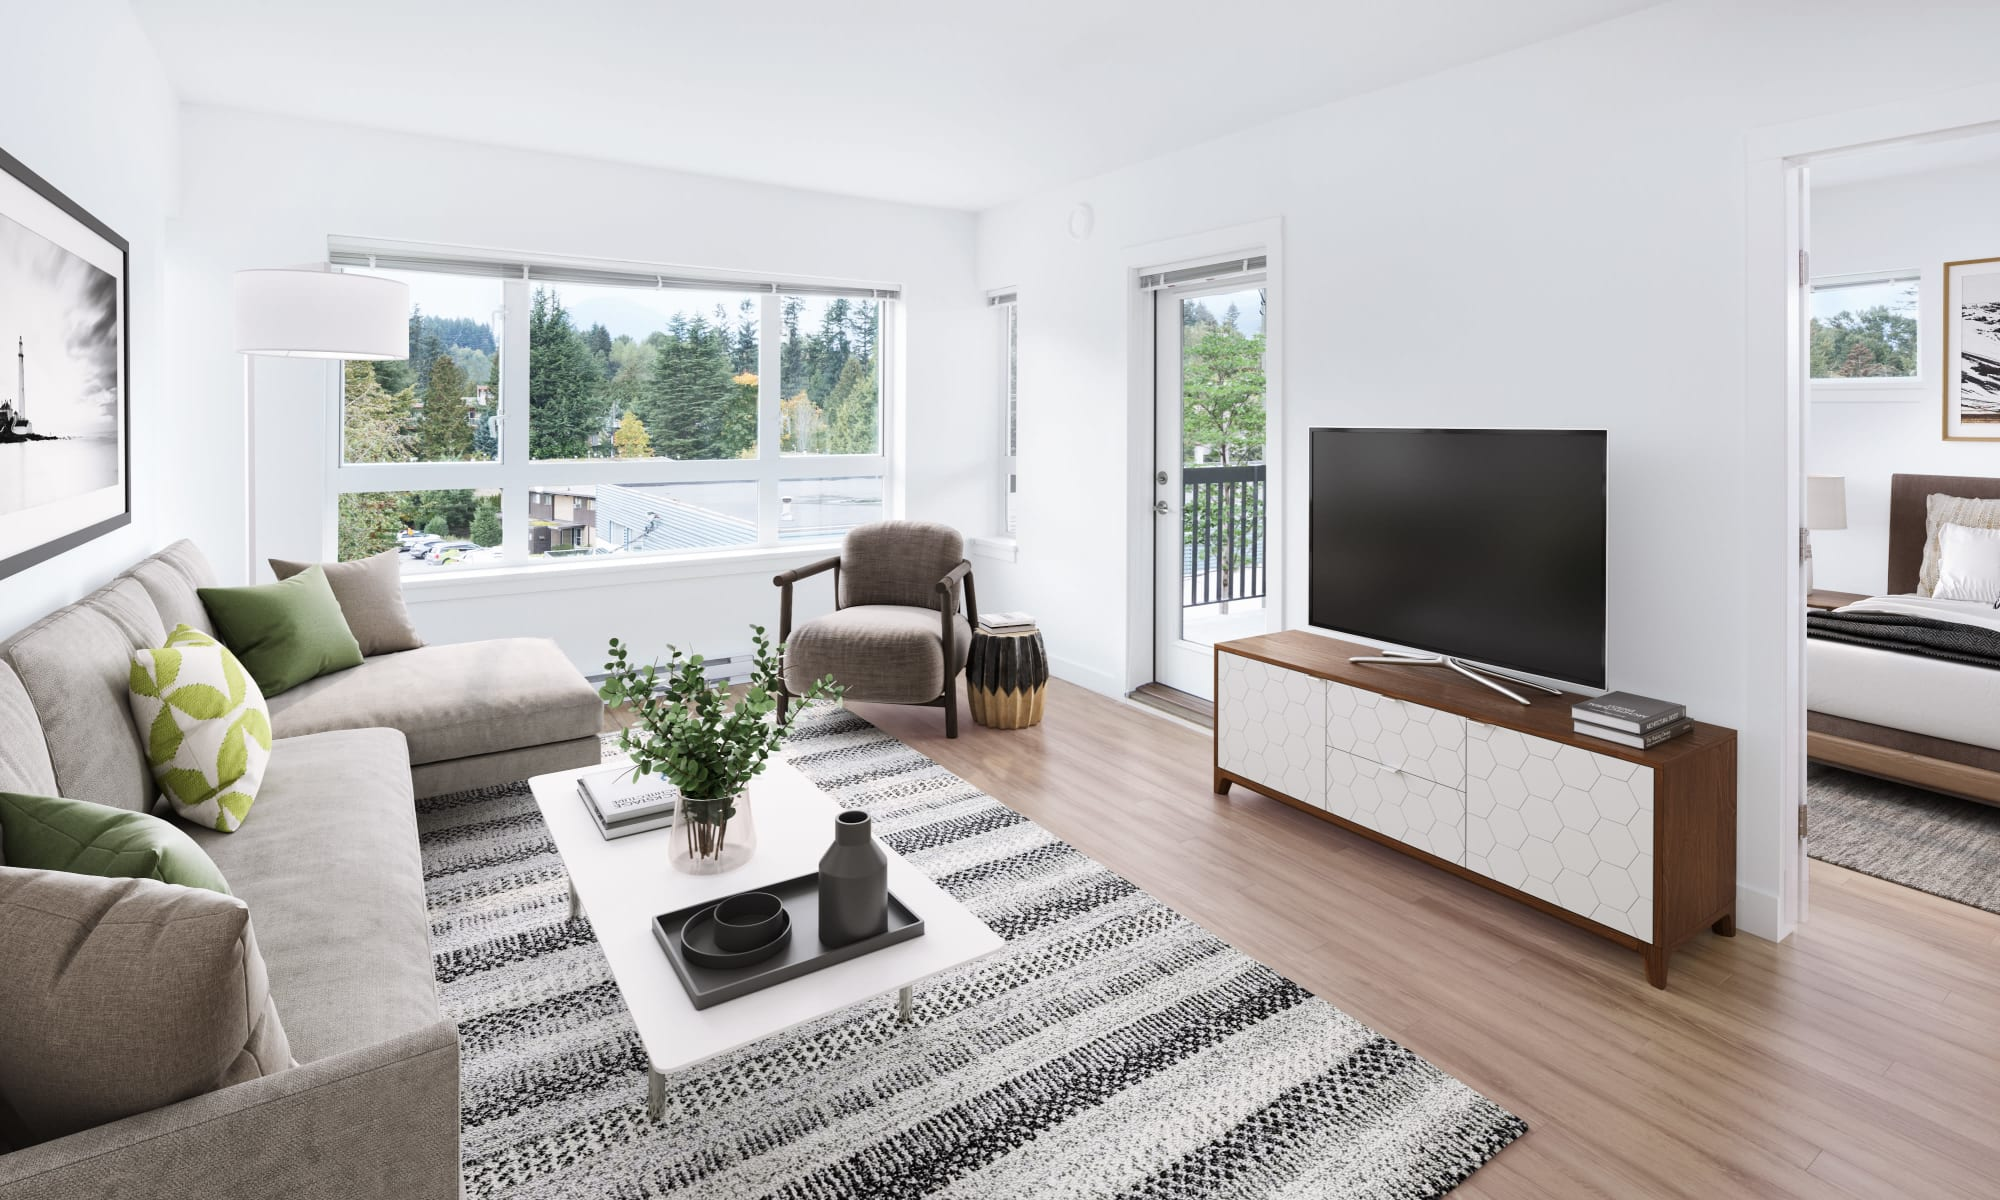 Naturally lit living room at Northwoods Village in North Vancouver, British Columbia